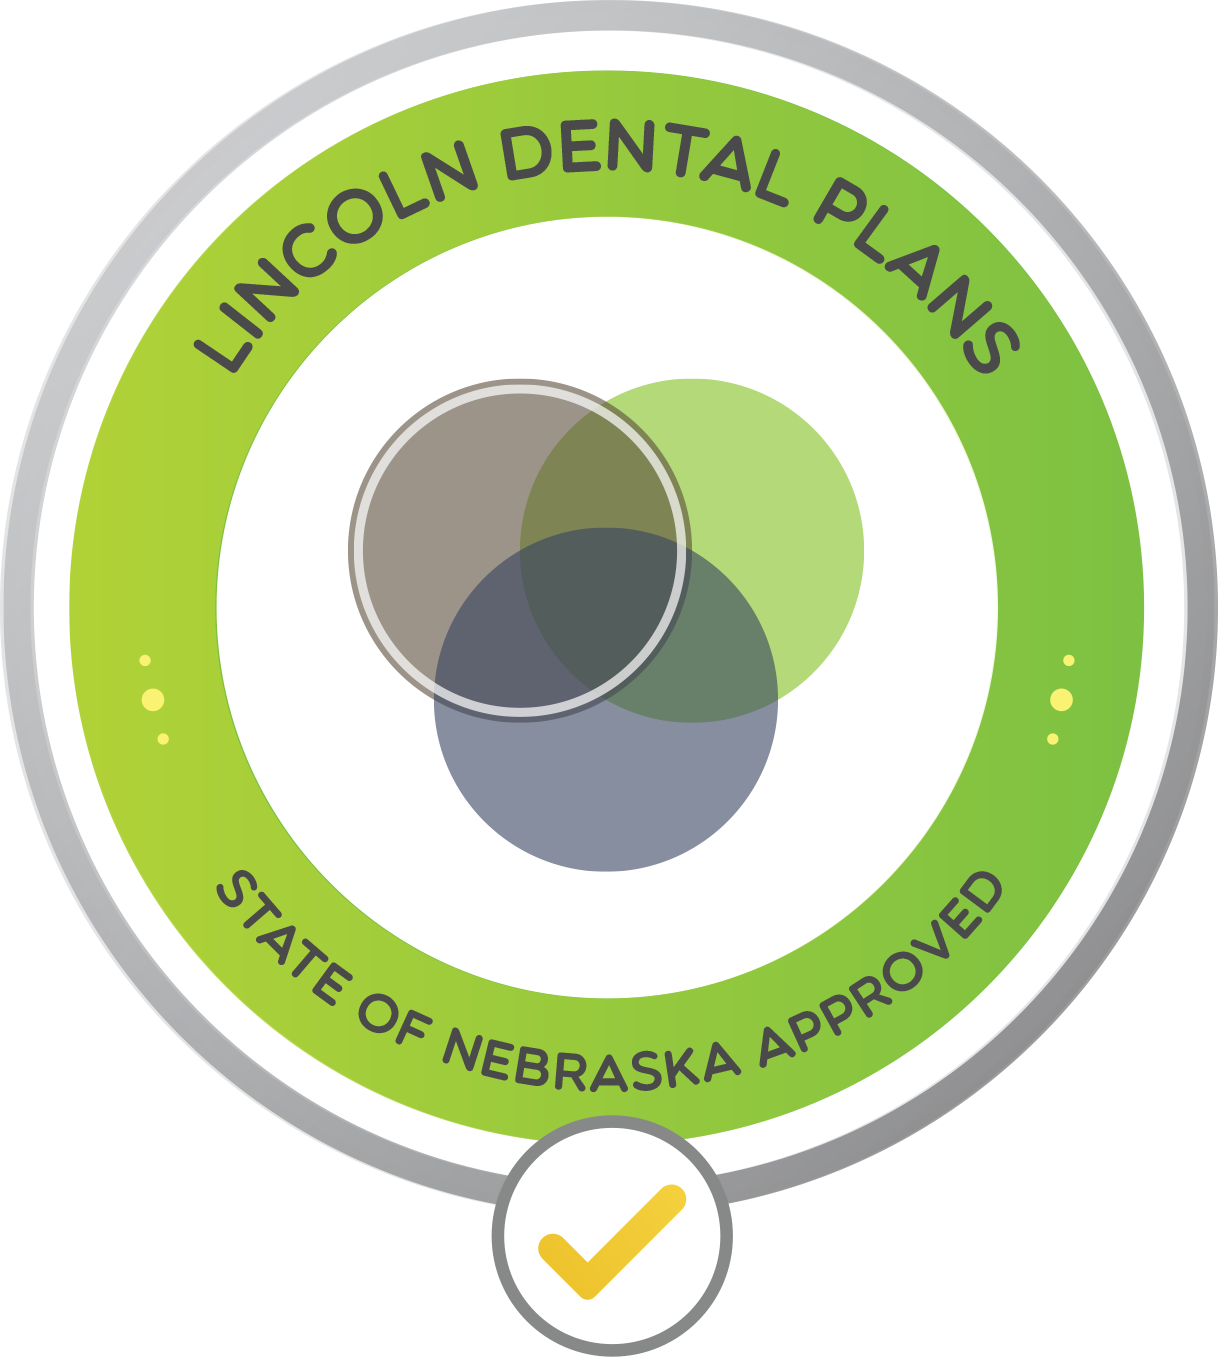 Lincoln Dental Plans